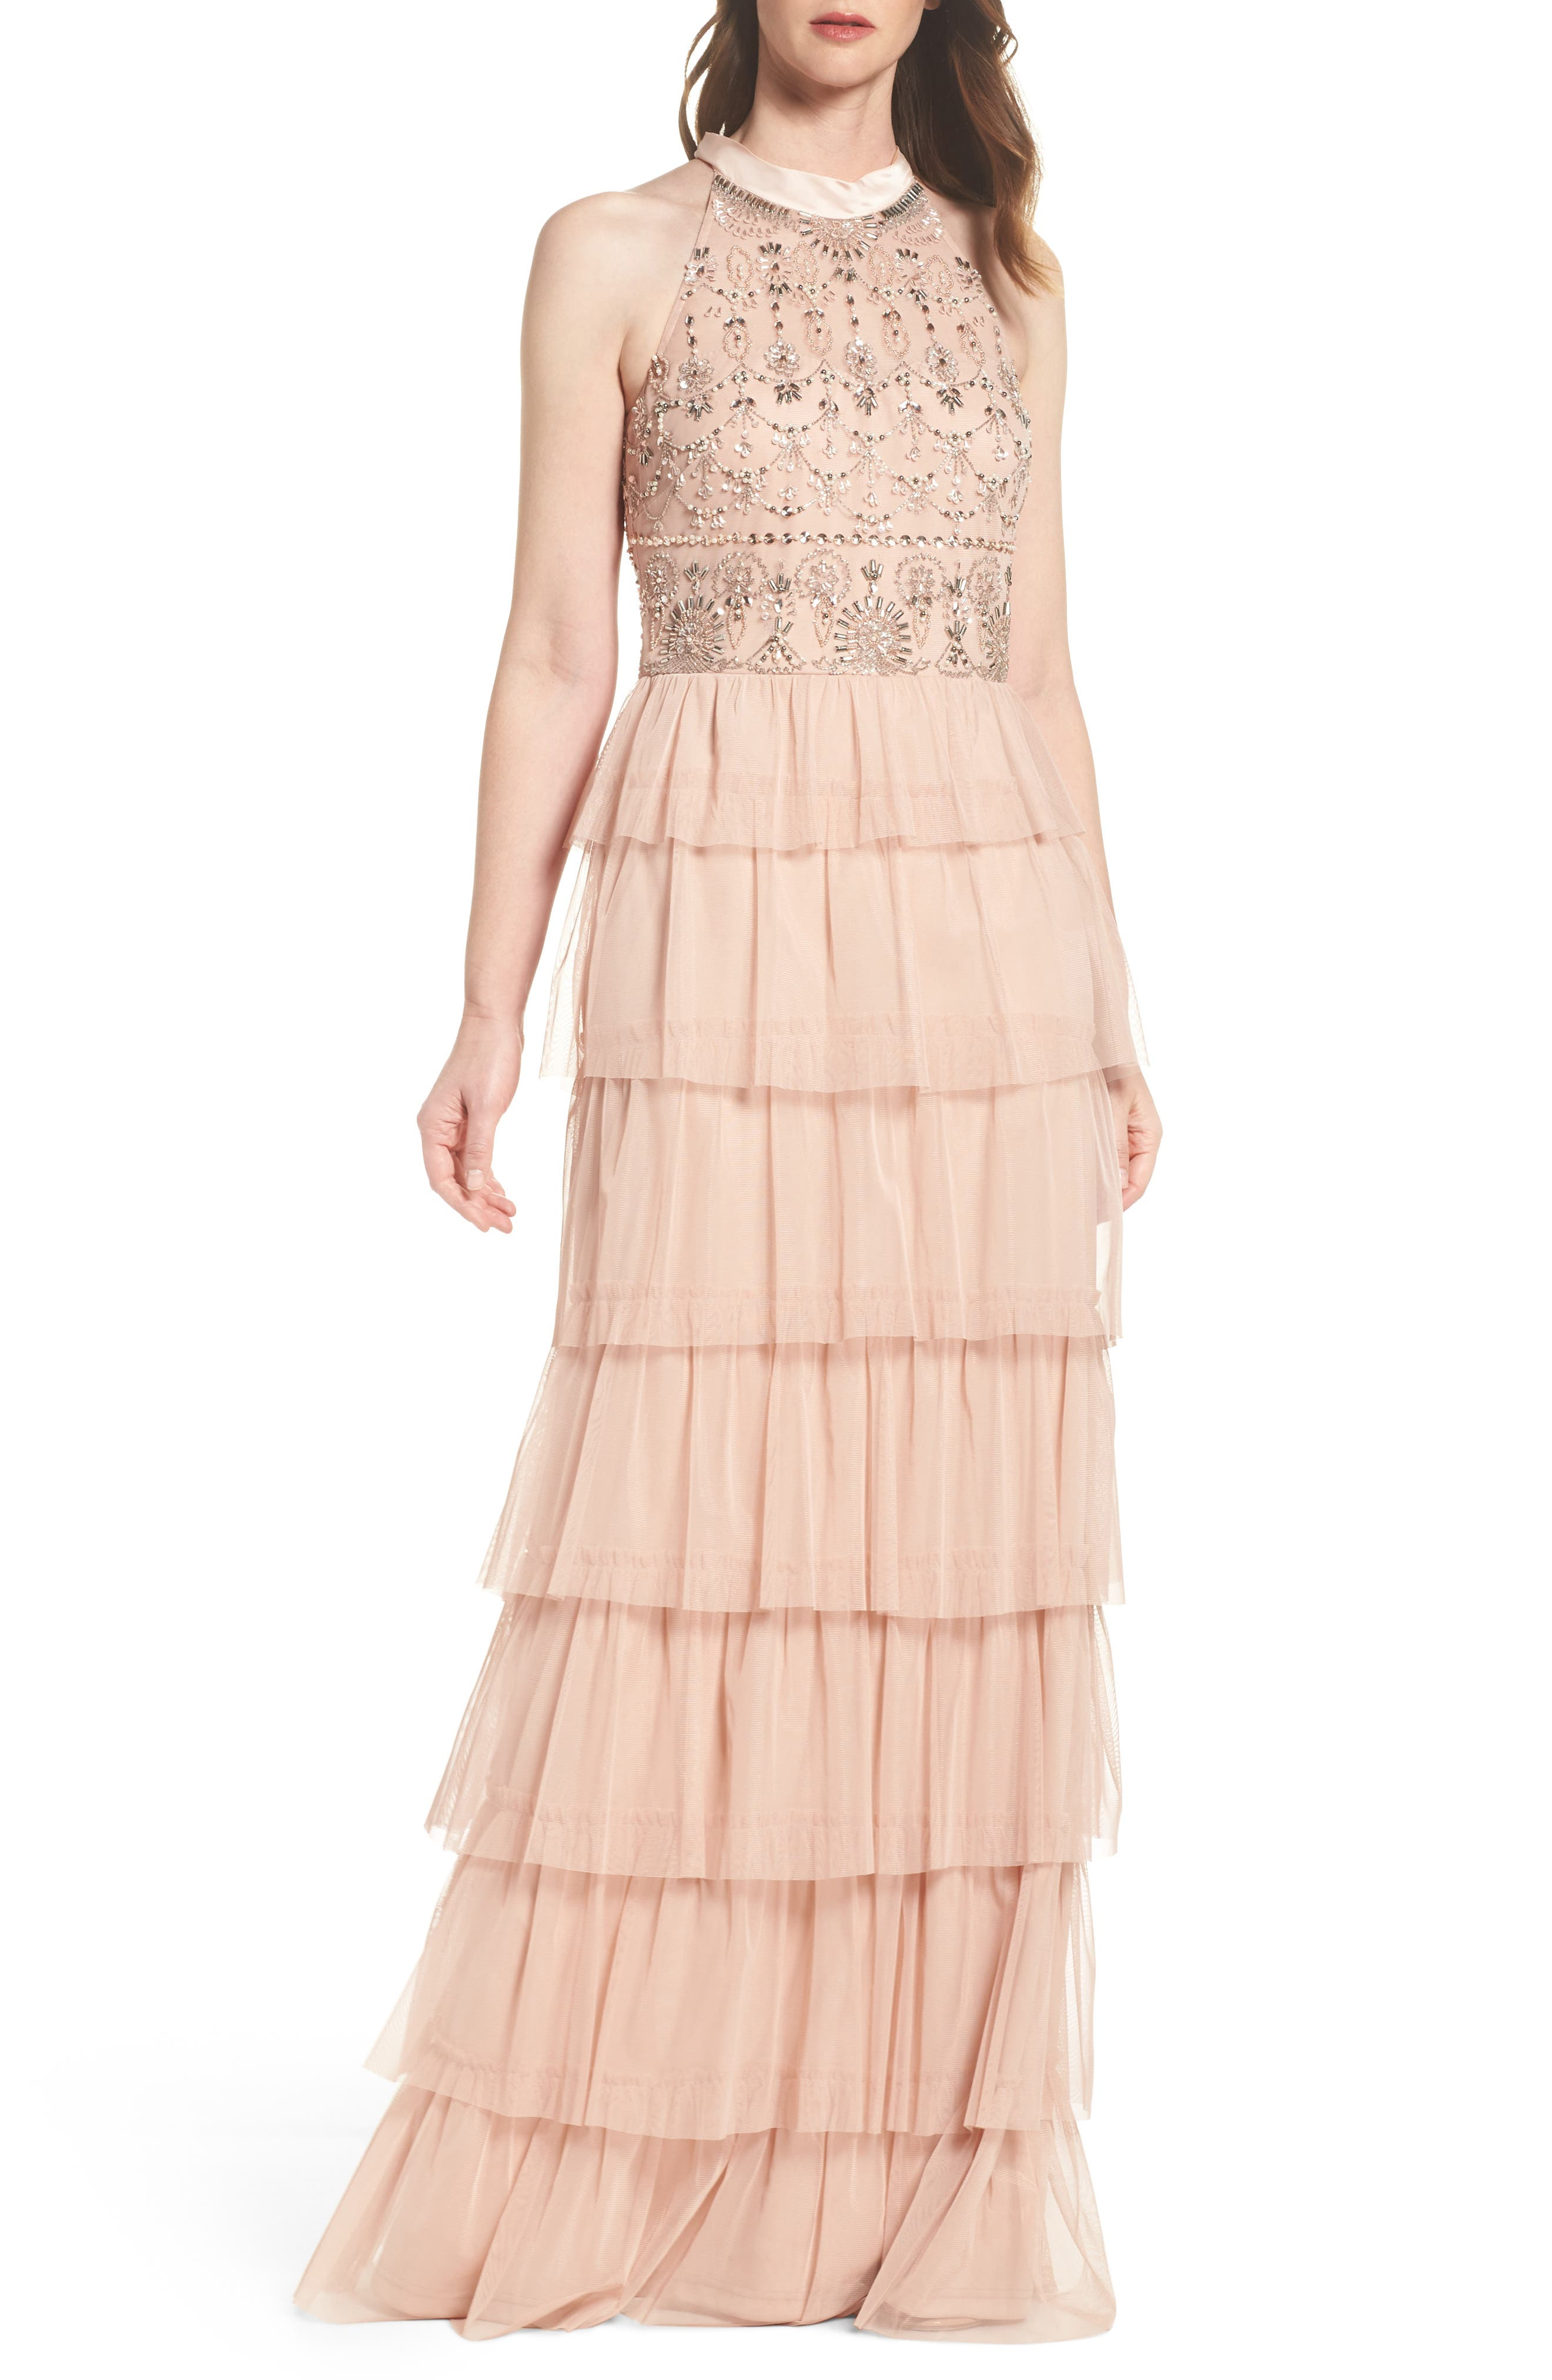 Alternate Image 1 Selected - Adrianna Papell Embellished Tiered Maxi Dress